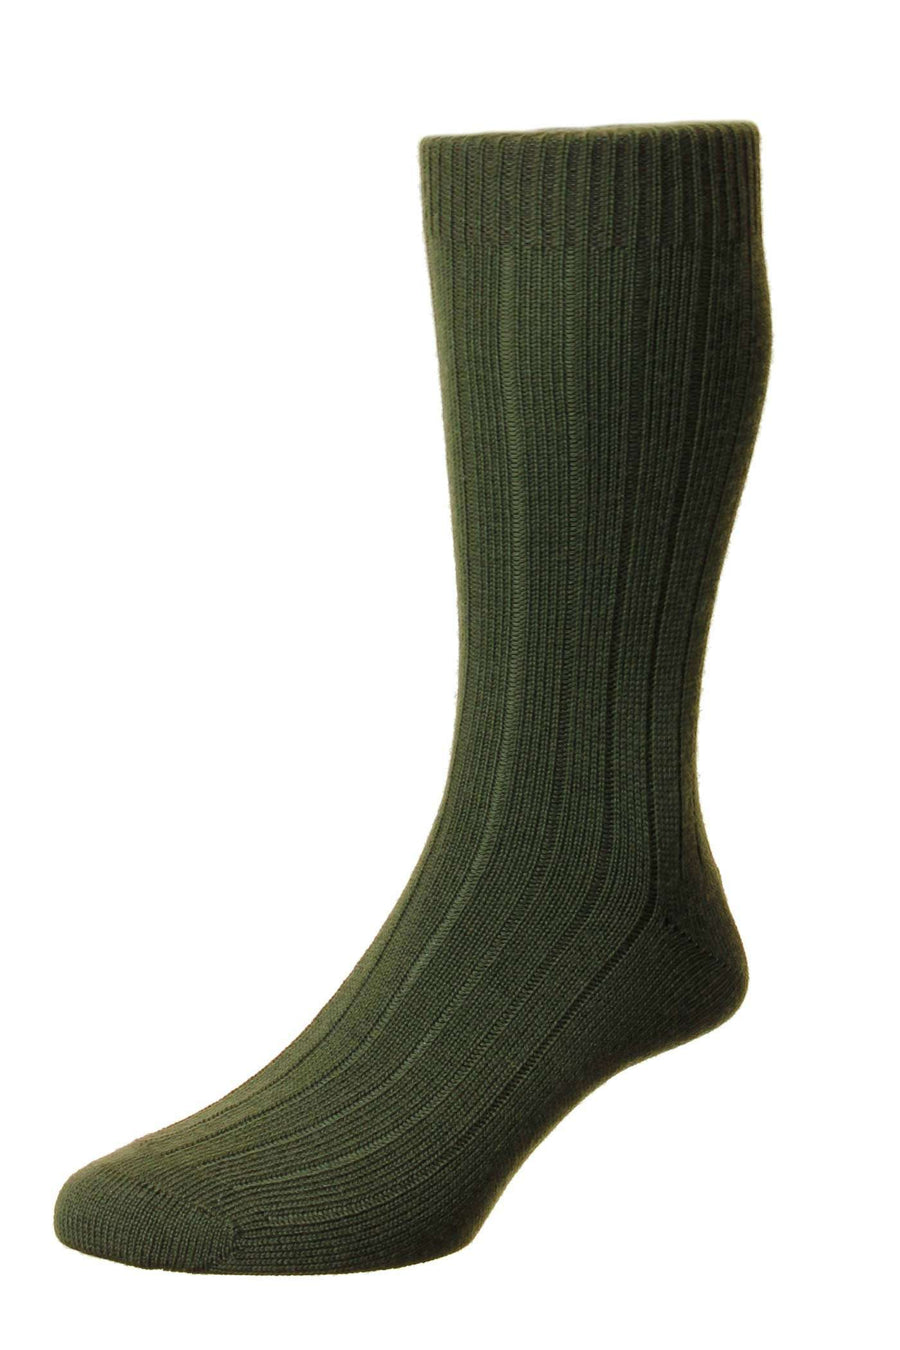 Dark Olive Sport Wool Mid-Calf